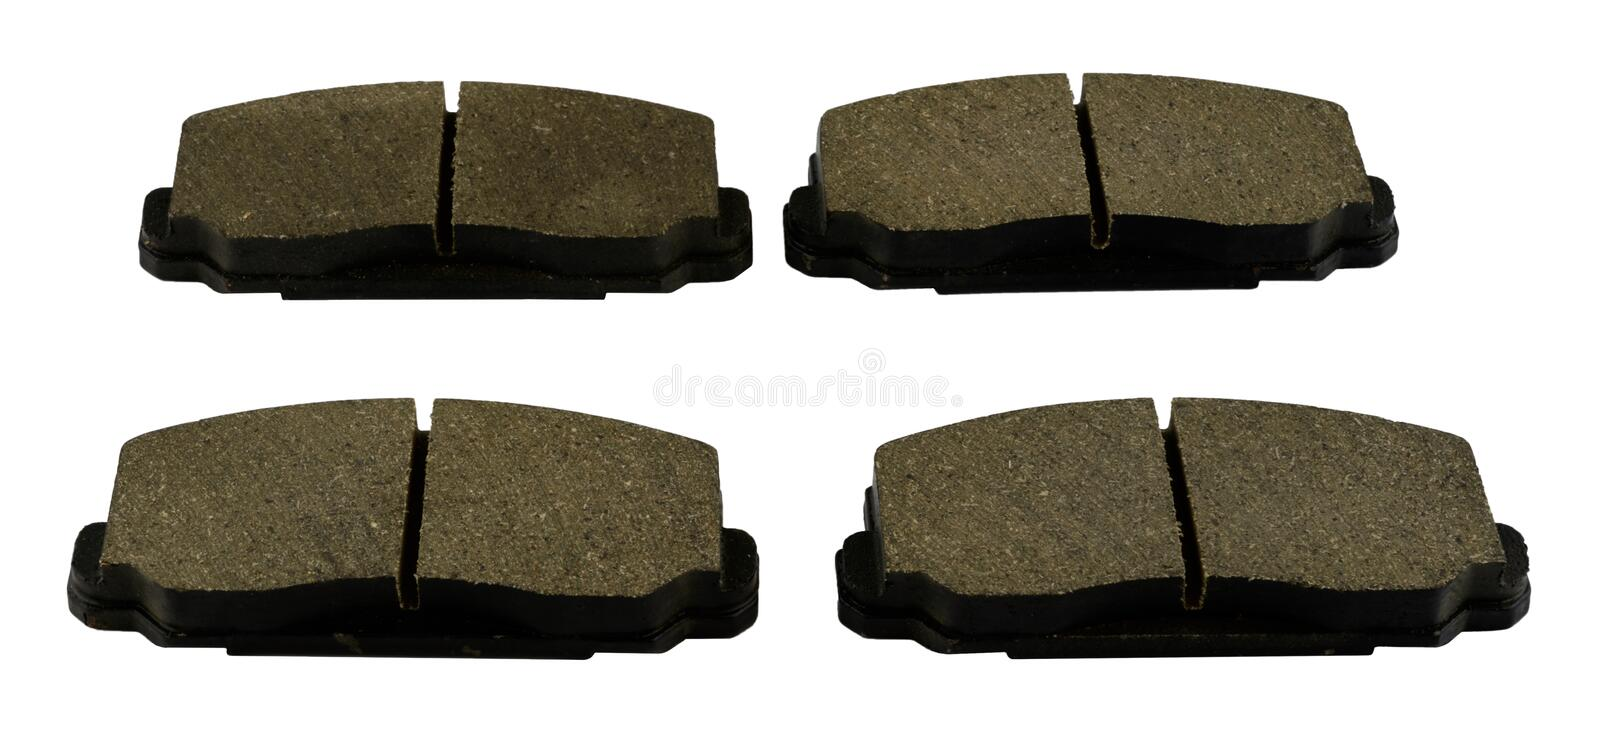 Antique vintage american automobile hydraulic disc brake pad set royalty free stock photography